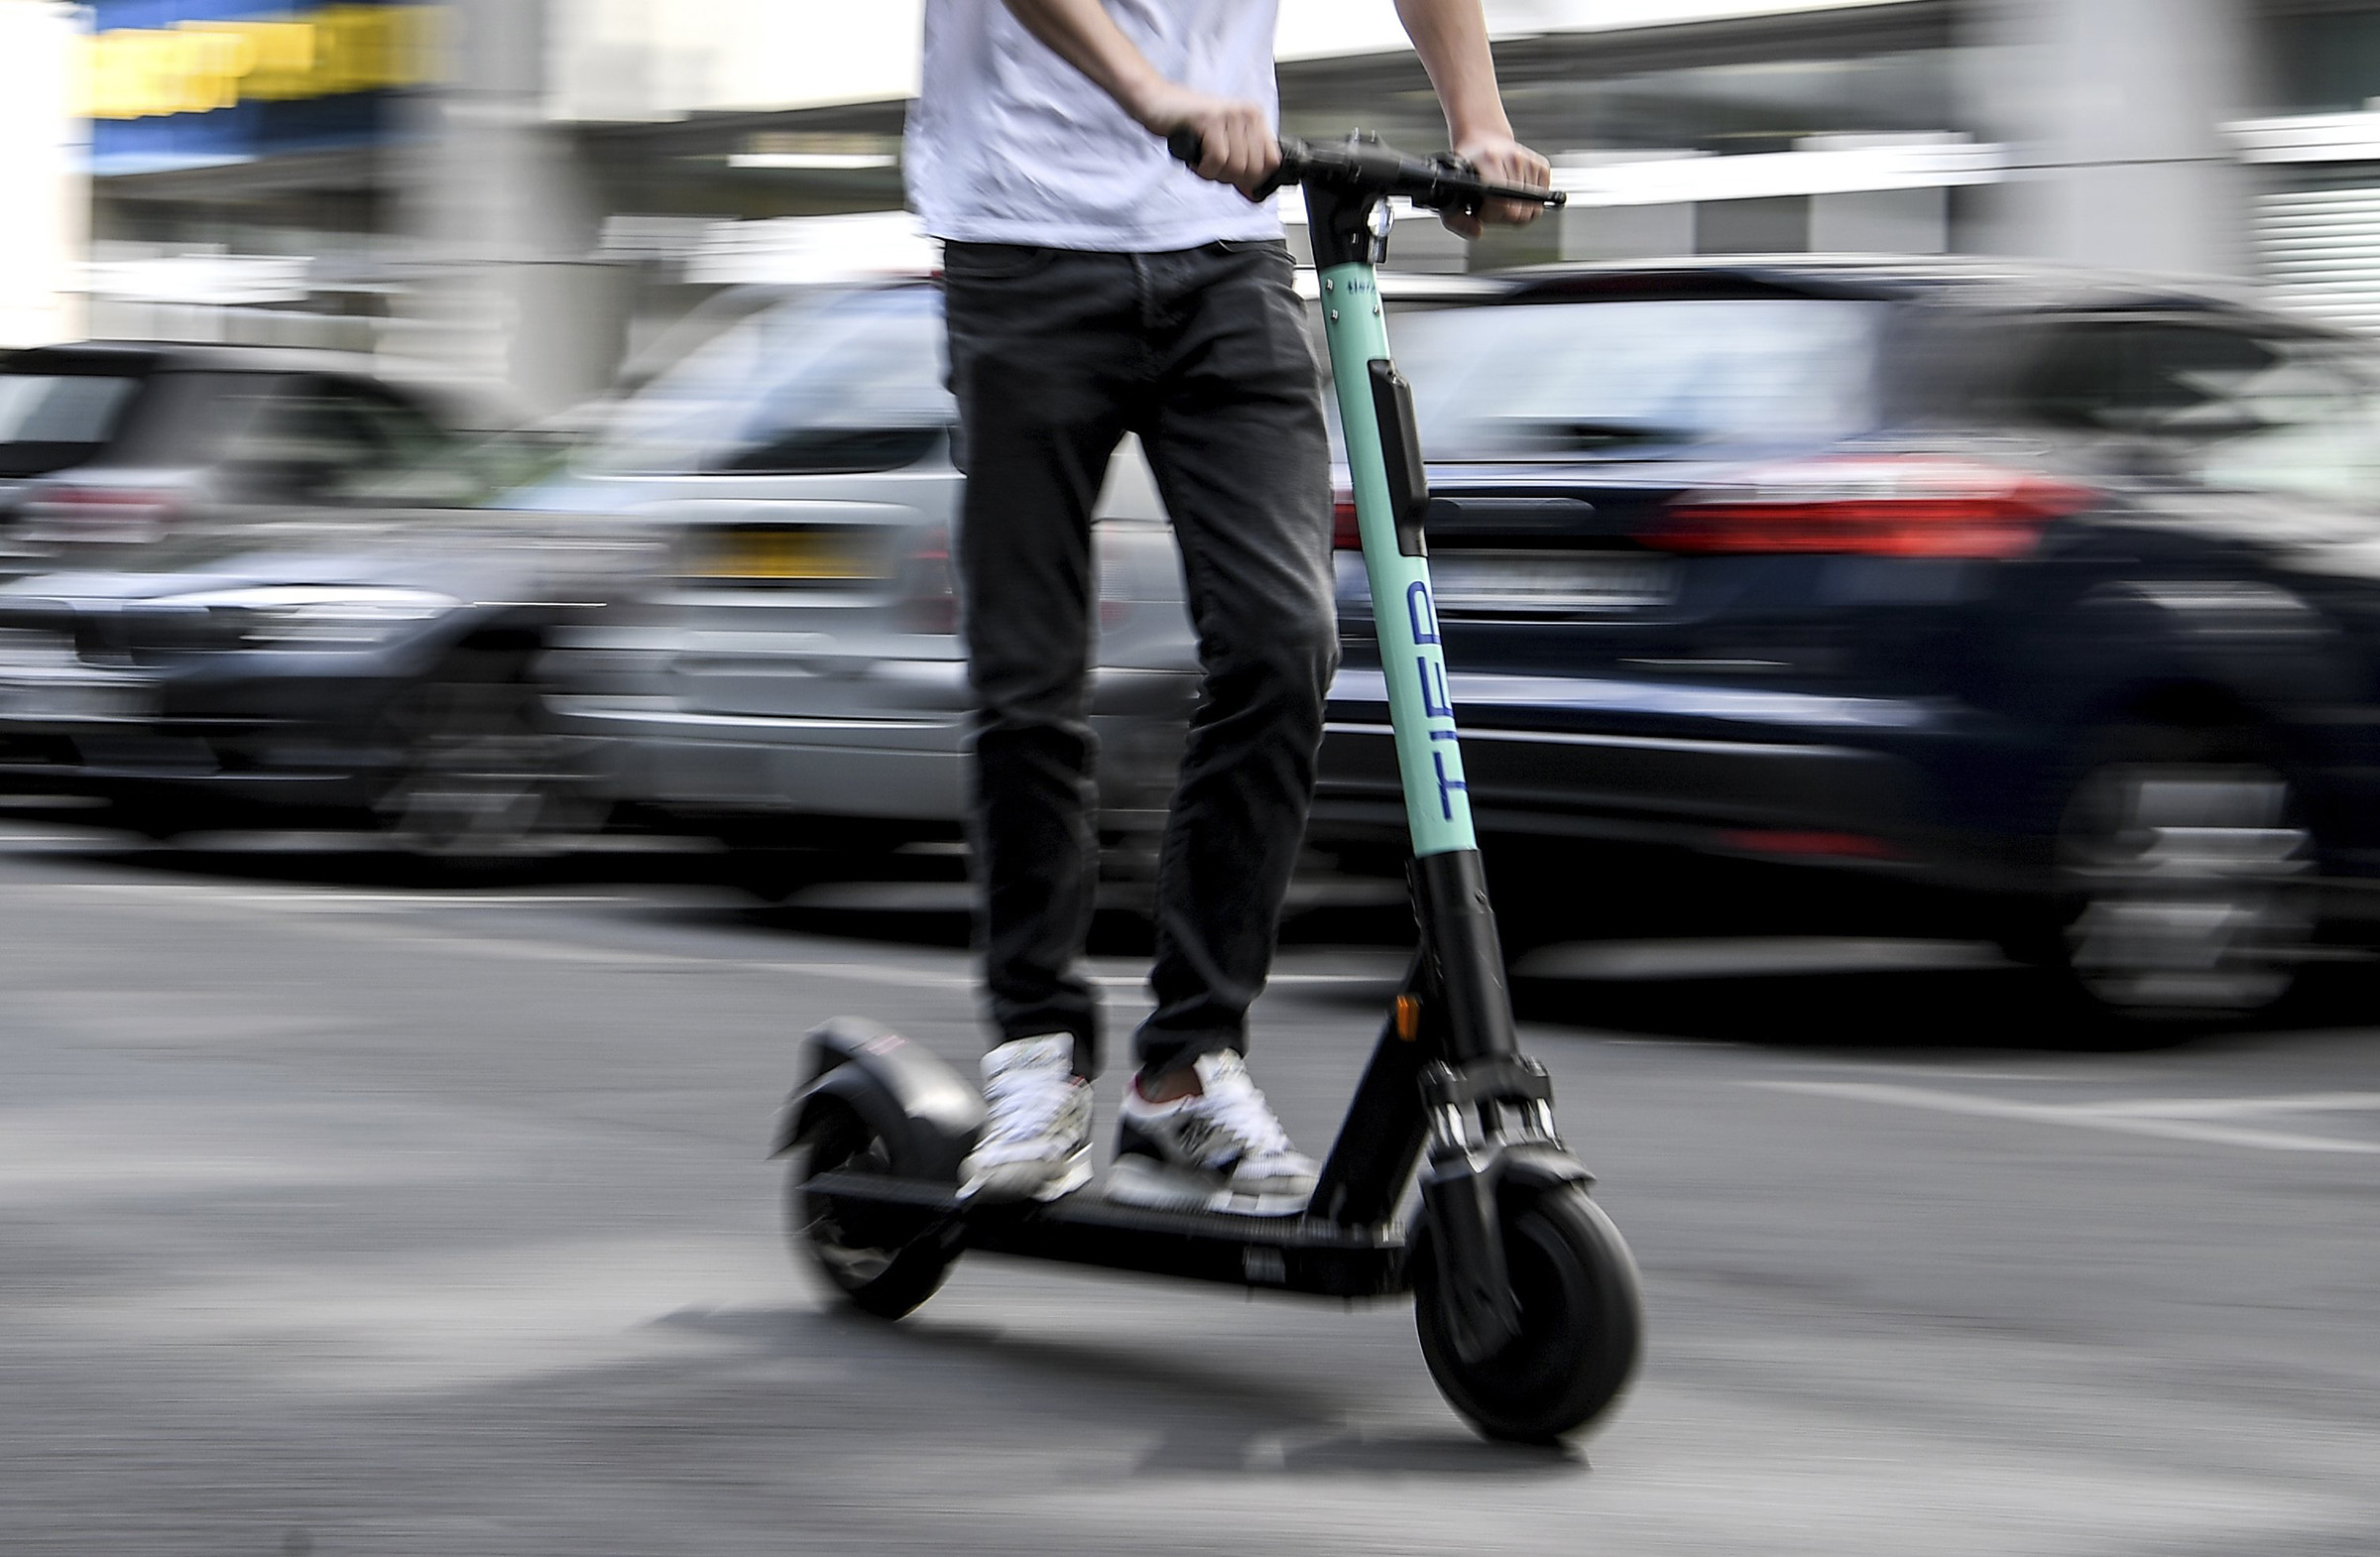 A man drives an electric pedal scooter from Tier in Berlin, Germany.